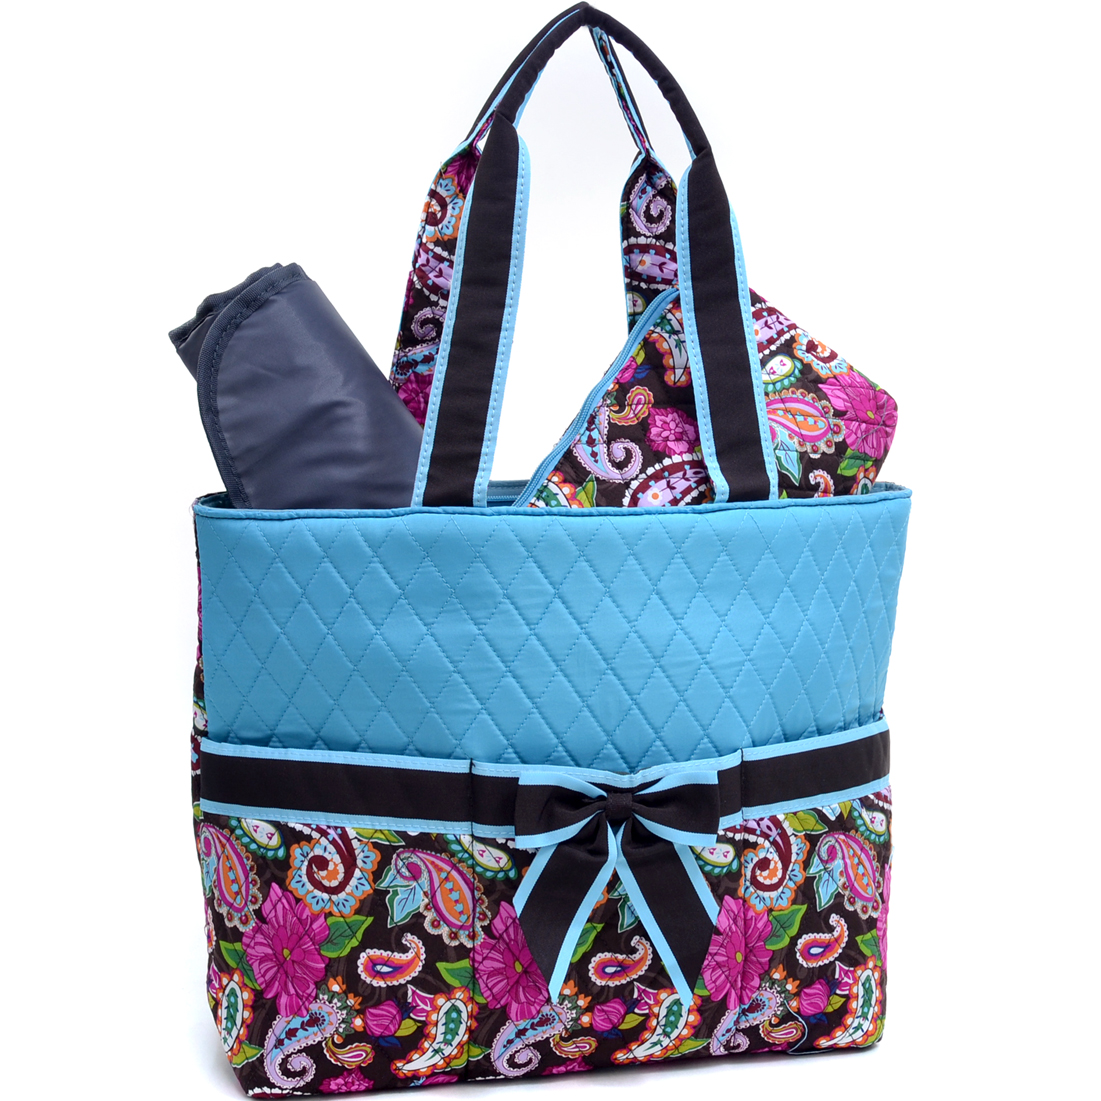 Rosen Blue® Morning Glory 3Piece Diaper Tote